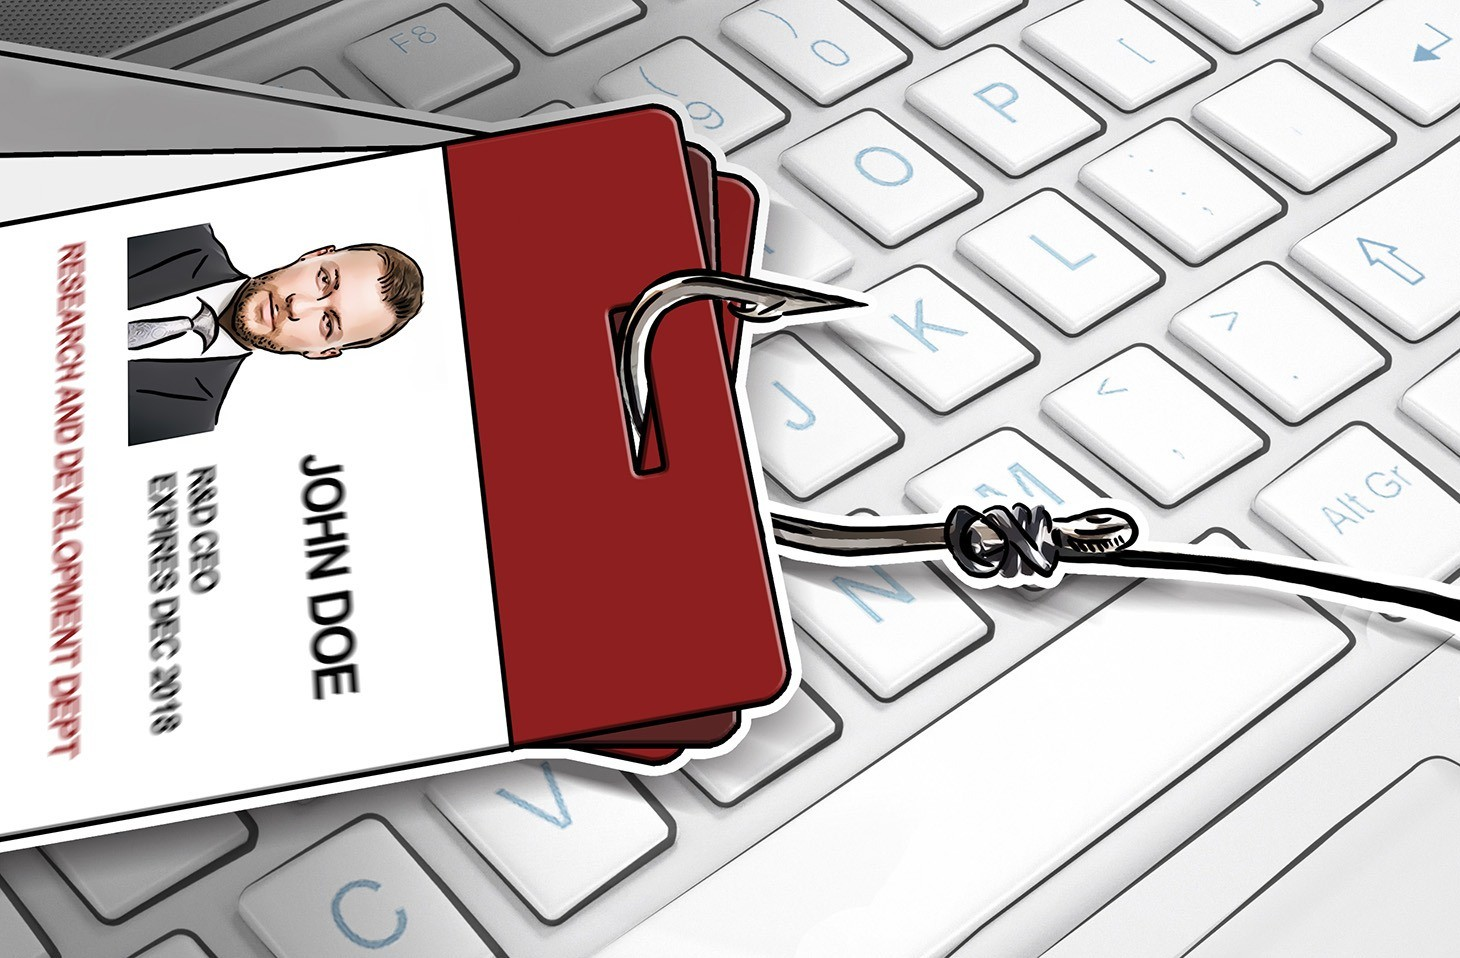 Hacker Payroll Social Engineering spear phish cybersecurity security awareness training fbi business password credentials protect guard secure cyberattack